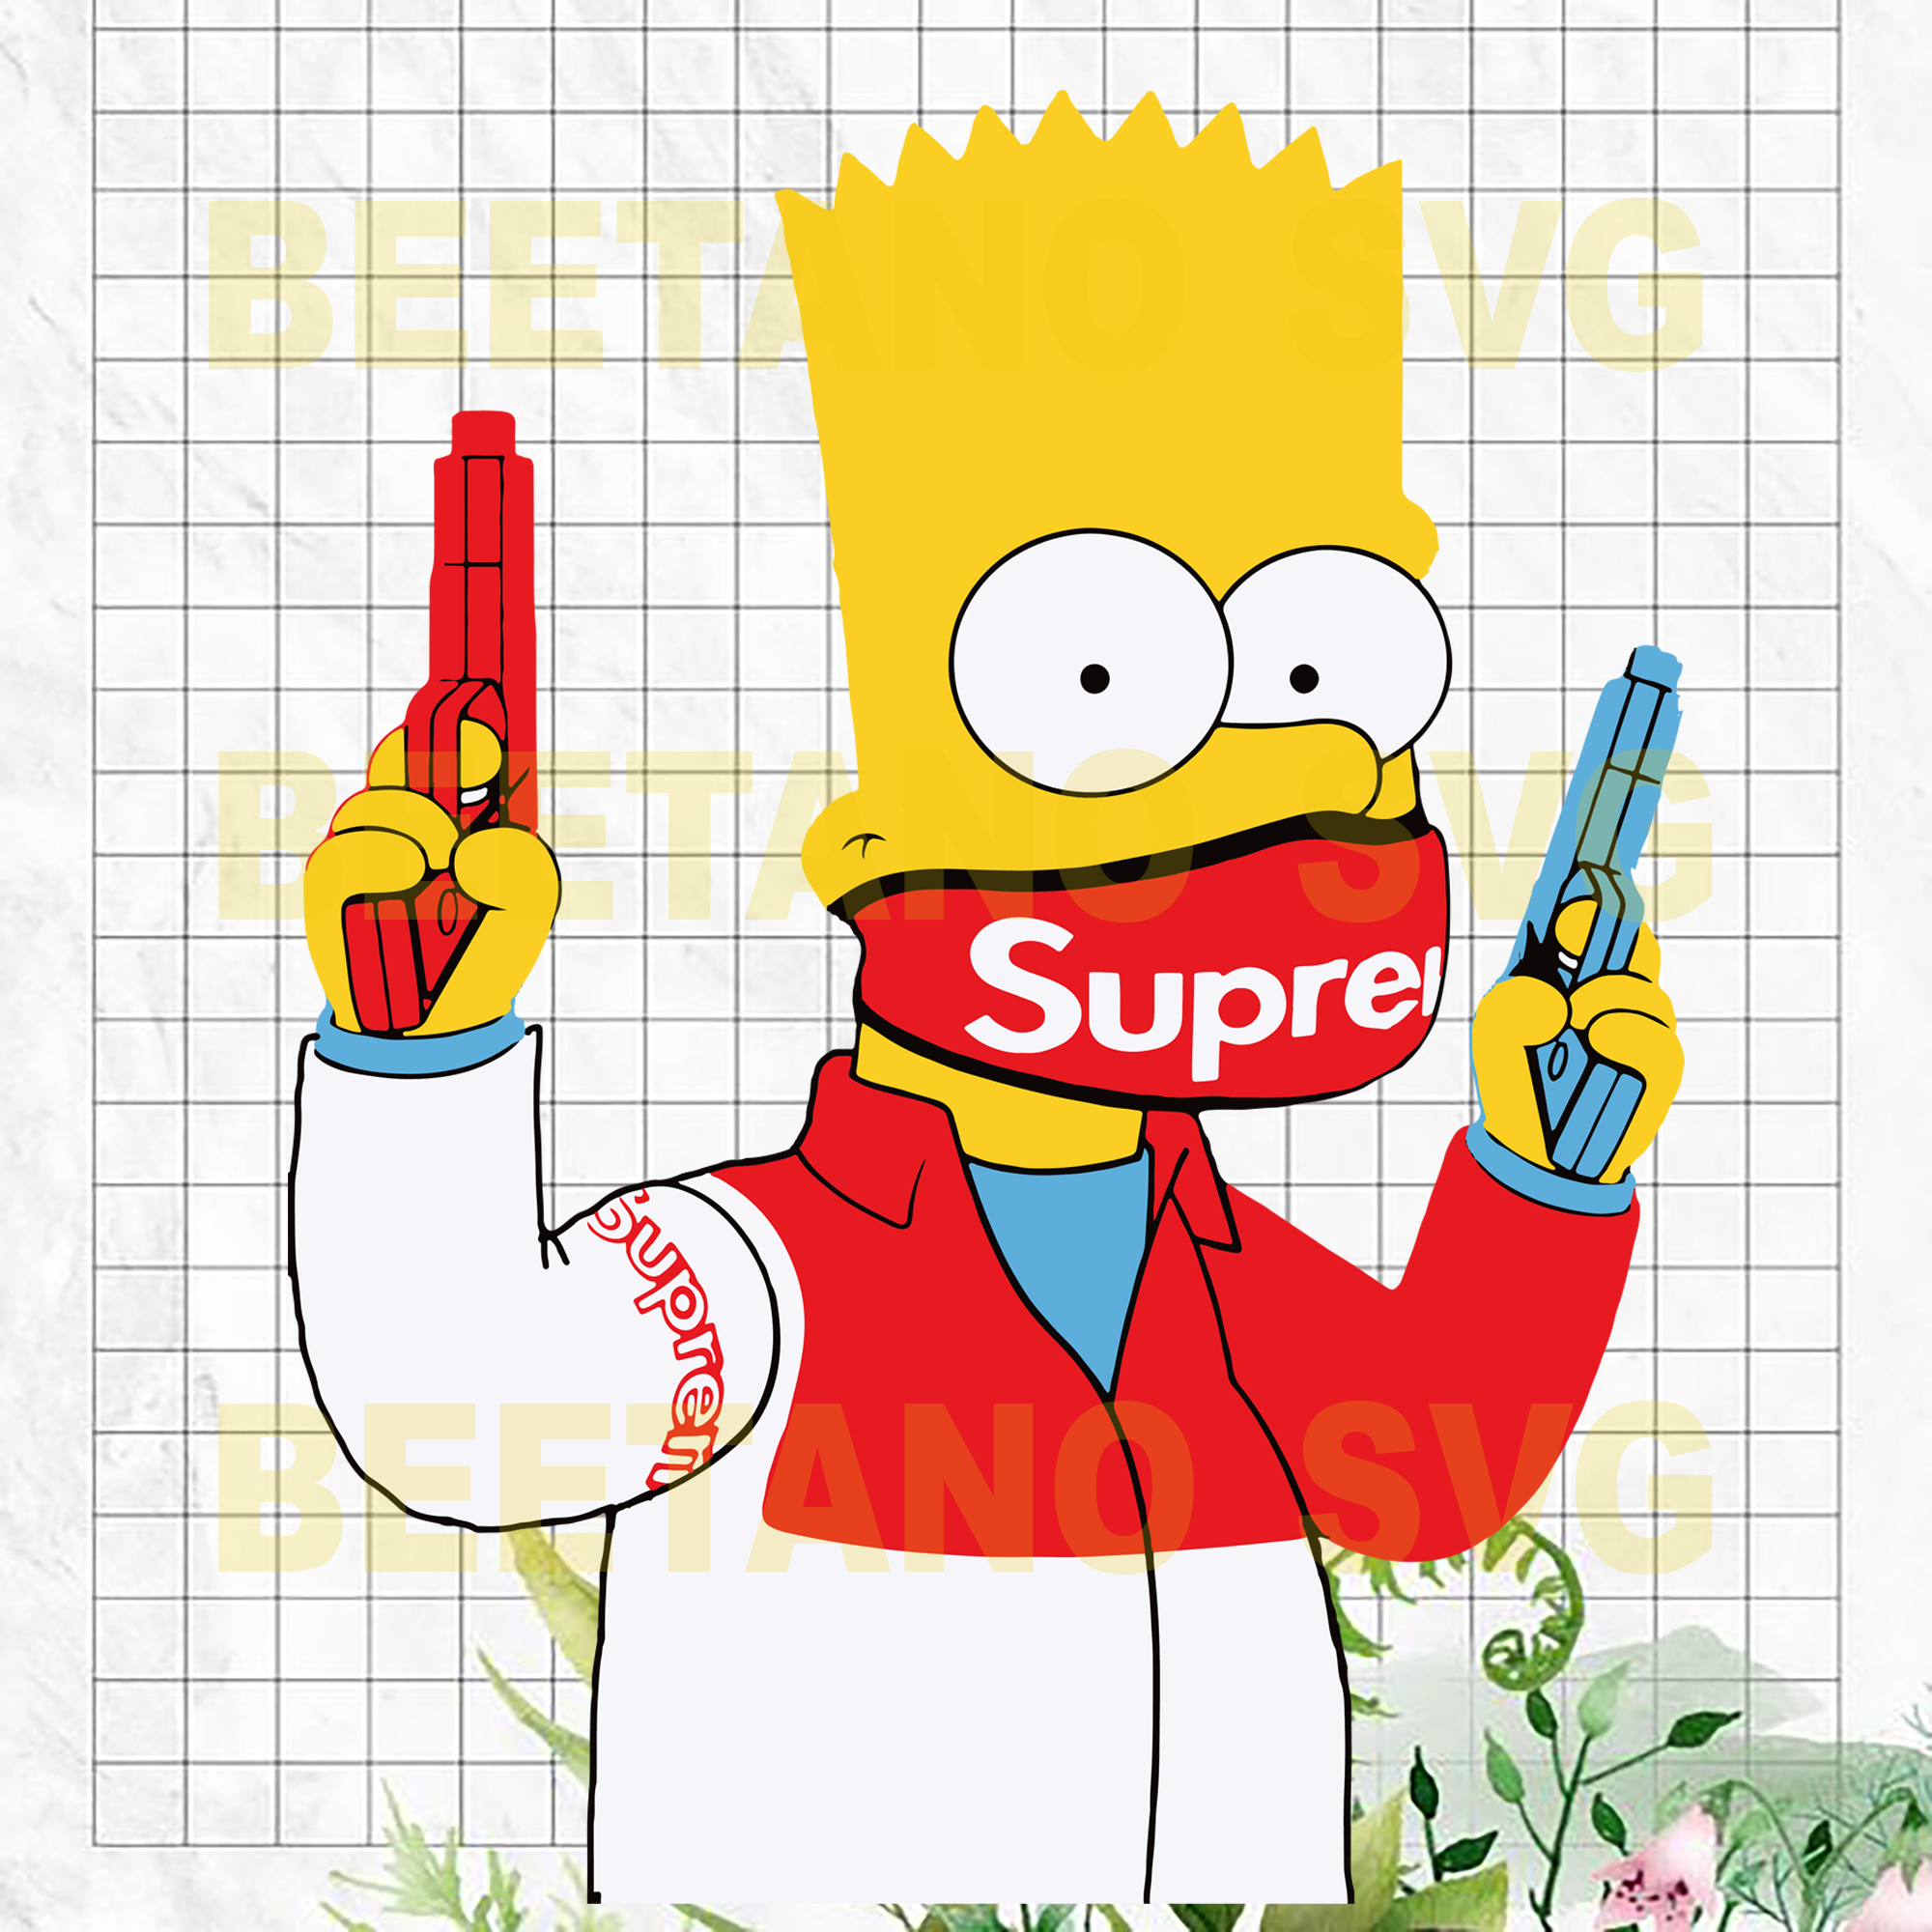 Simpson Supreme Svg Files, The Simpsons Supreme Vector, Supreme Svg, The Simpsons Supreme Clipart, The Simpsons Supreme Cutting Files For Cricut, SVG, DXF, EPS, PNG Instant Download